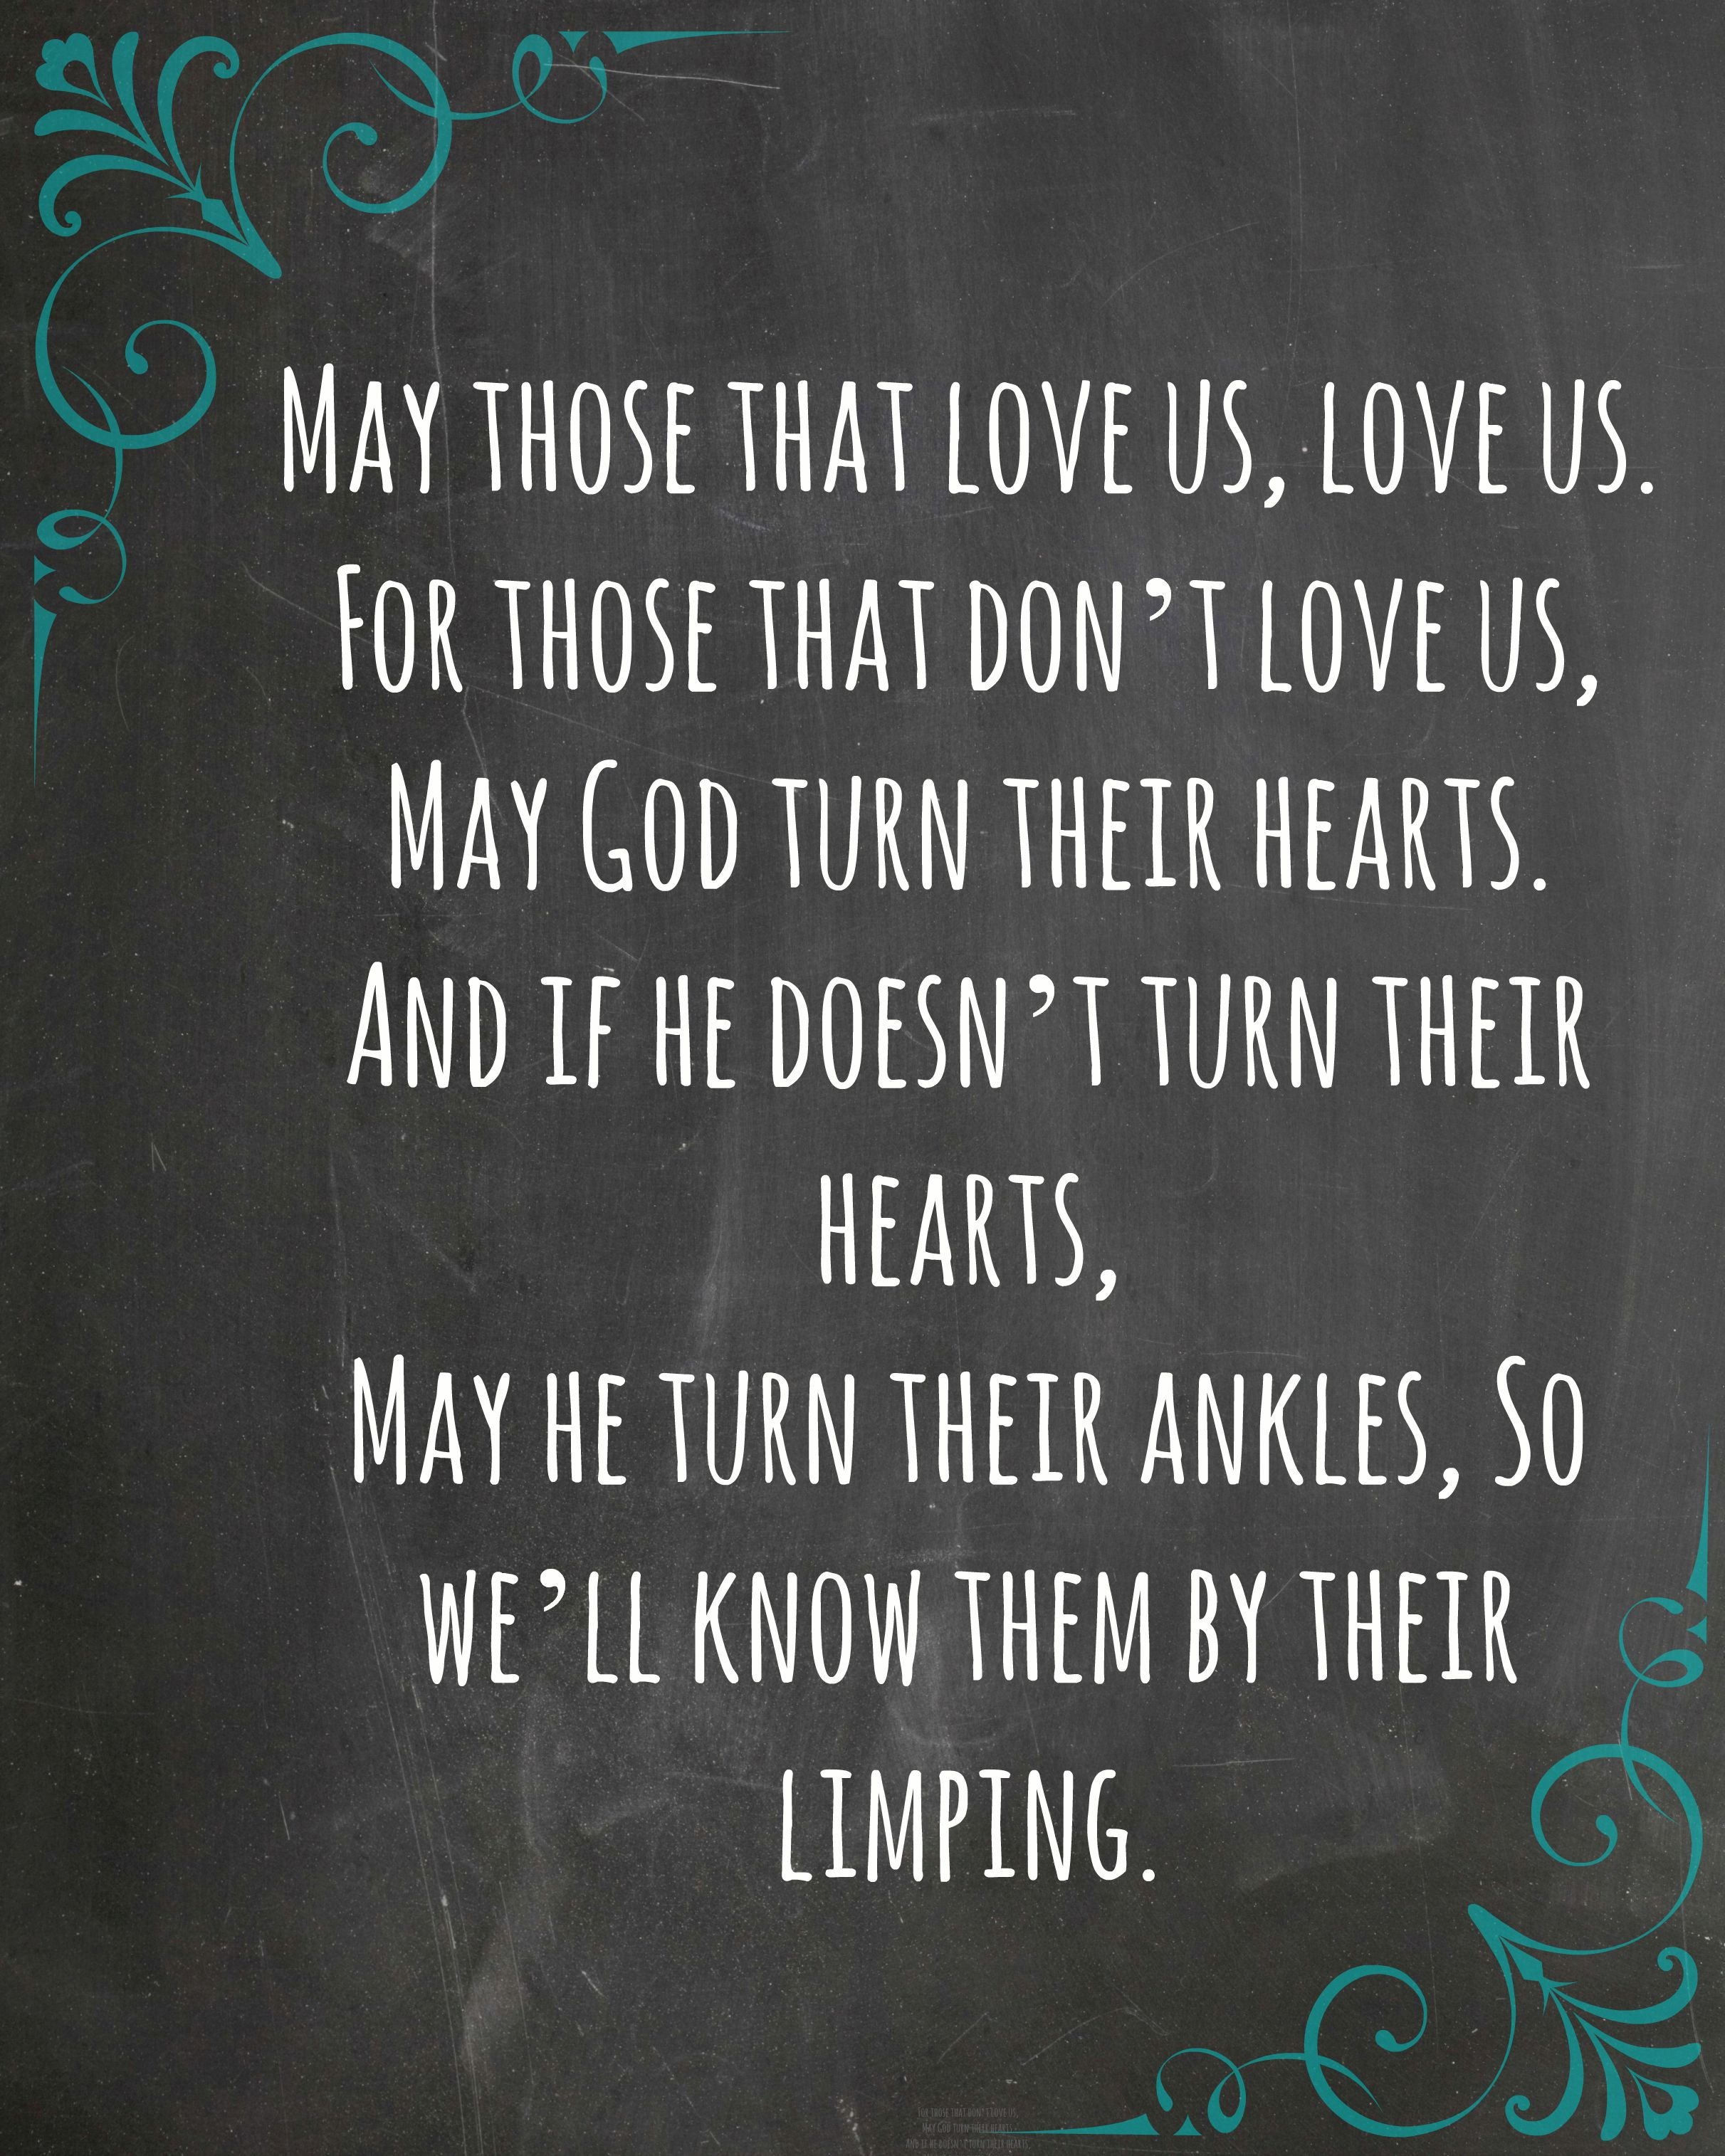 I Love You More Than Funny Quotes Parents Start Every Iep Meeting With This Prayer It Will Make A